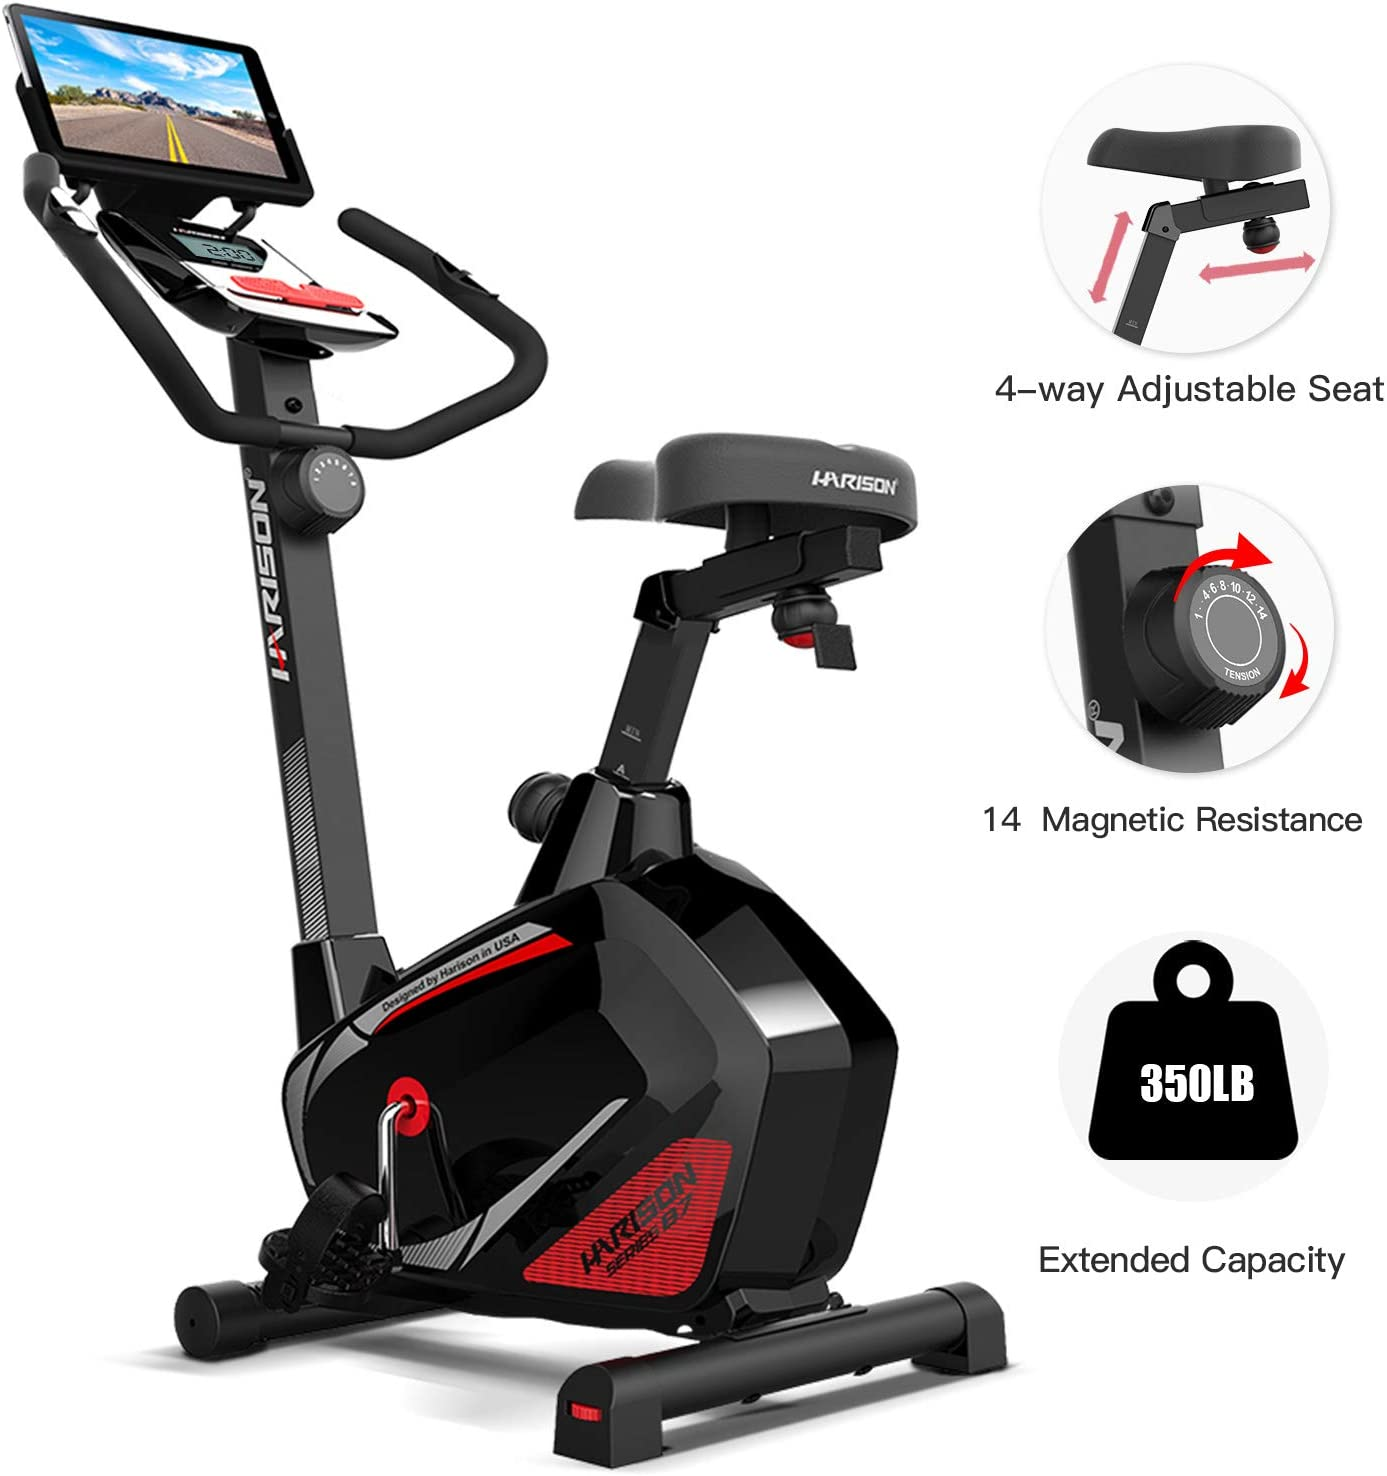 HARISON Magnetic Upright Exercise Bike Stationary with Table Holder 300 LBS Capacity for Home Gym Cardio Workout